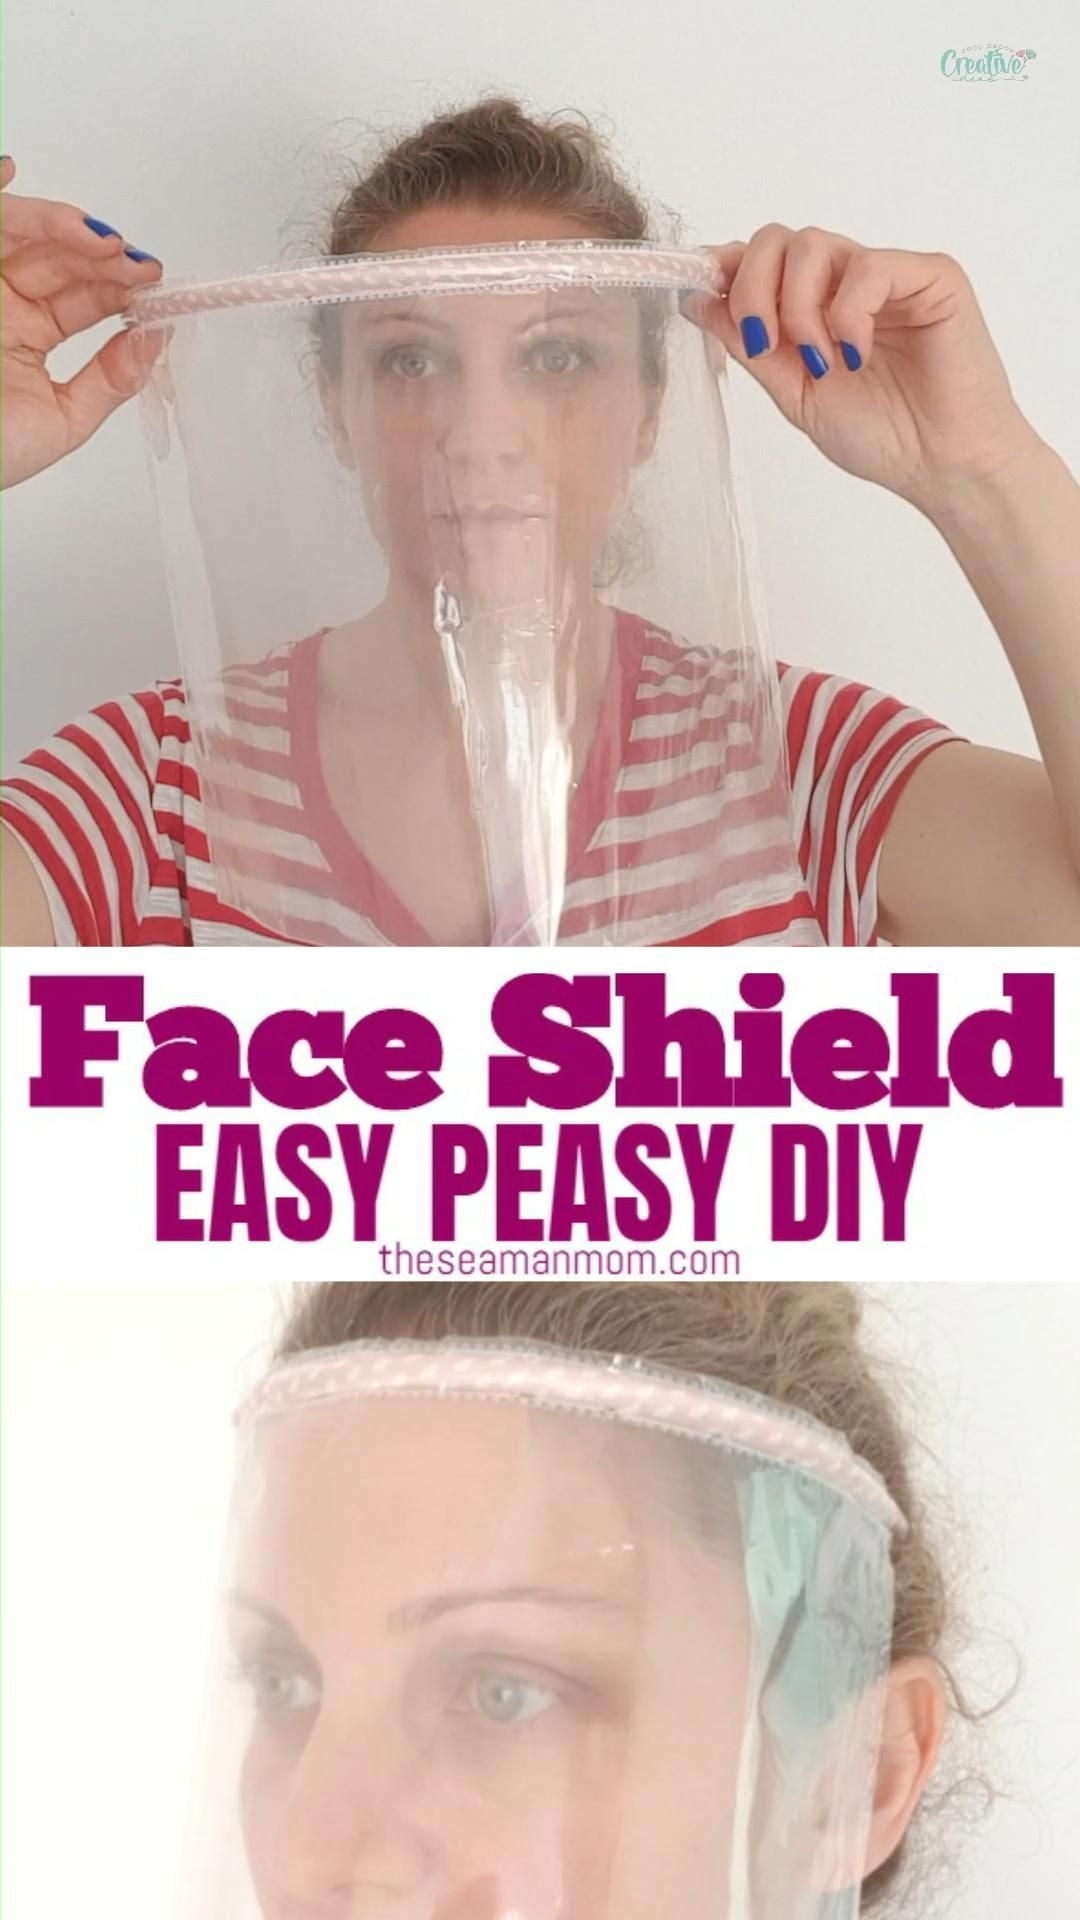 This is a simple face shield that is super easy to make